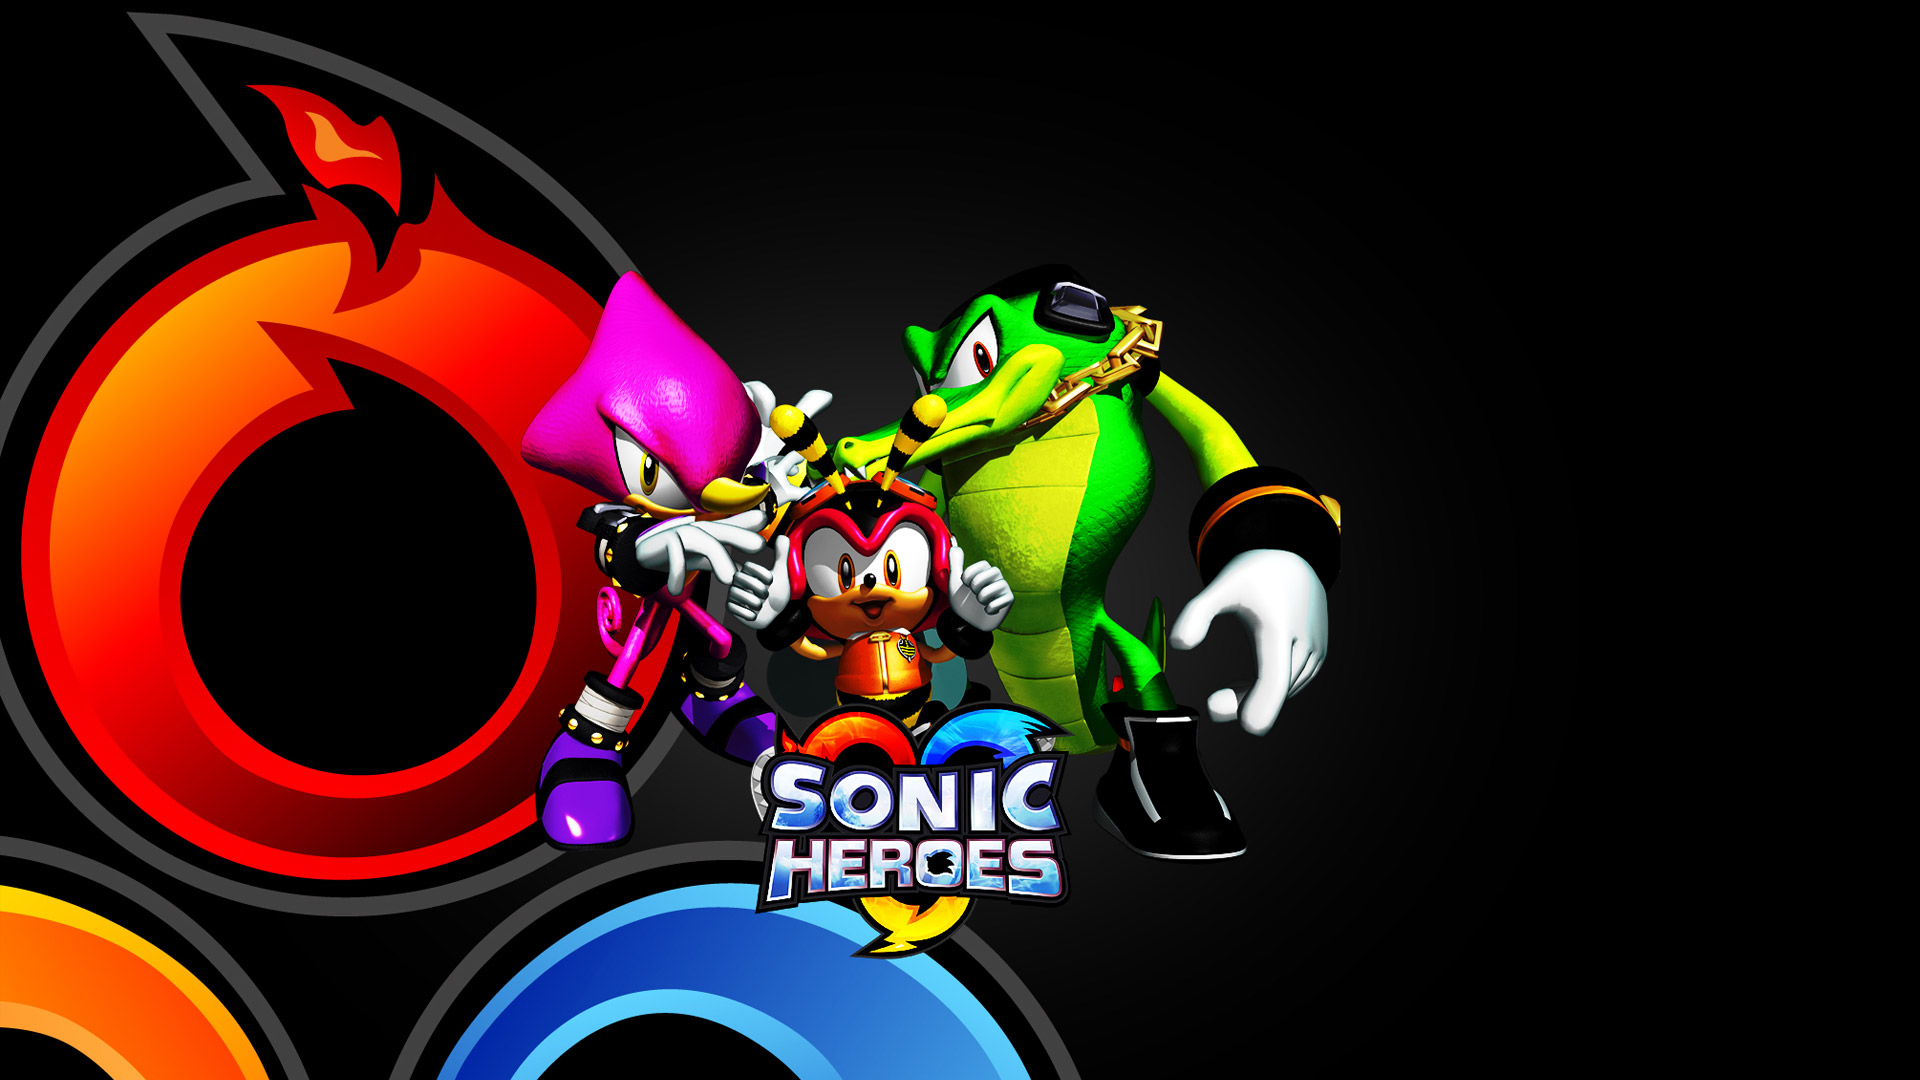 Sonic Heroes Wallpaper in 1920x1080